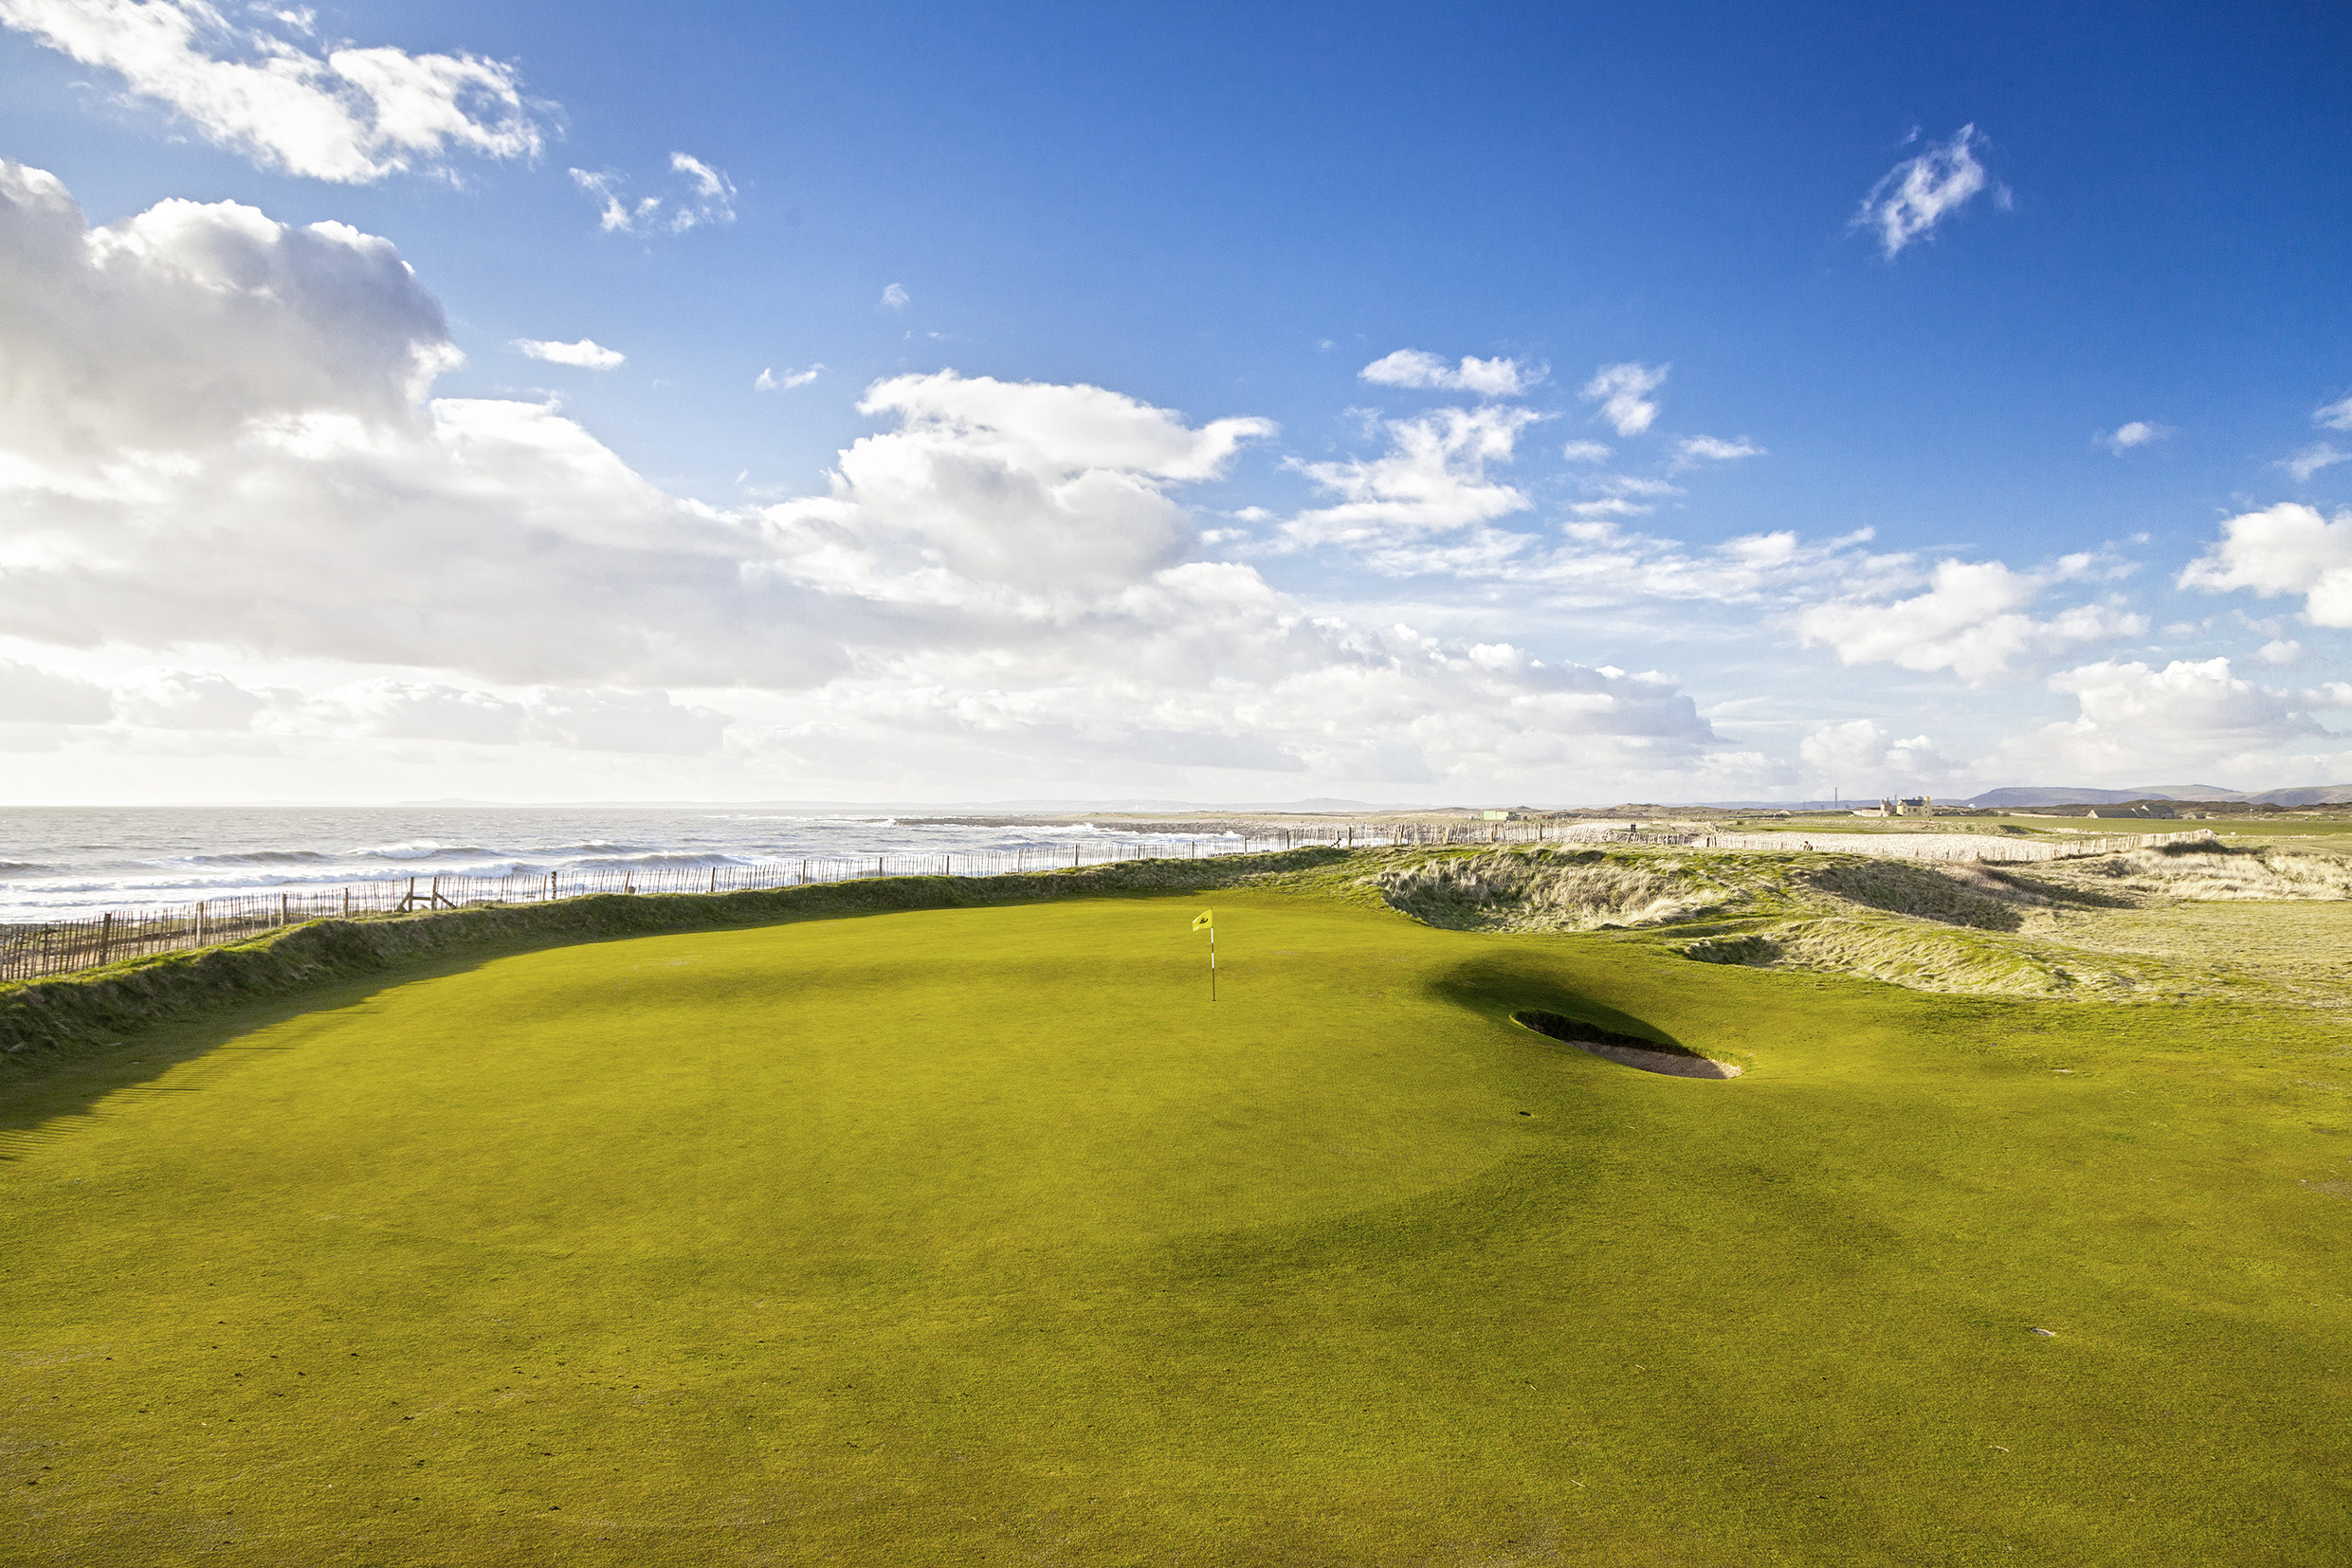 An illustration of the beautiful location enjoyed by the 2nd green at Royal Porthcawl.